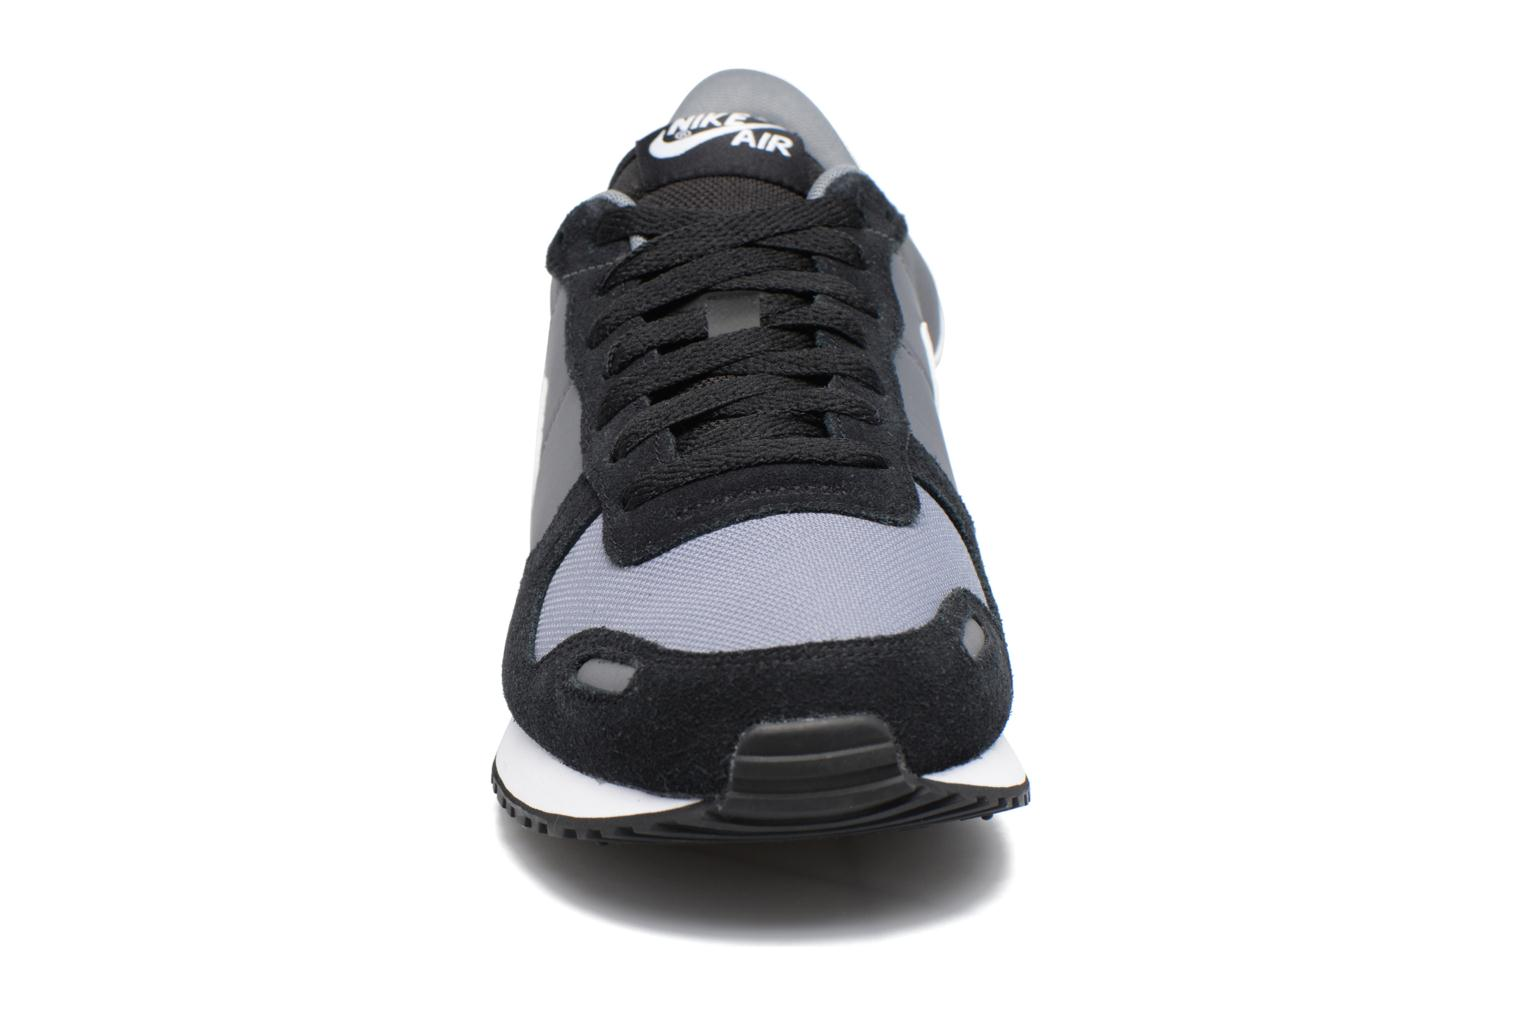 Nike Air Vrtx BLACK/WHITE-COOL GREY-WHITE